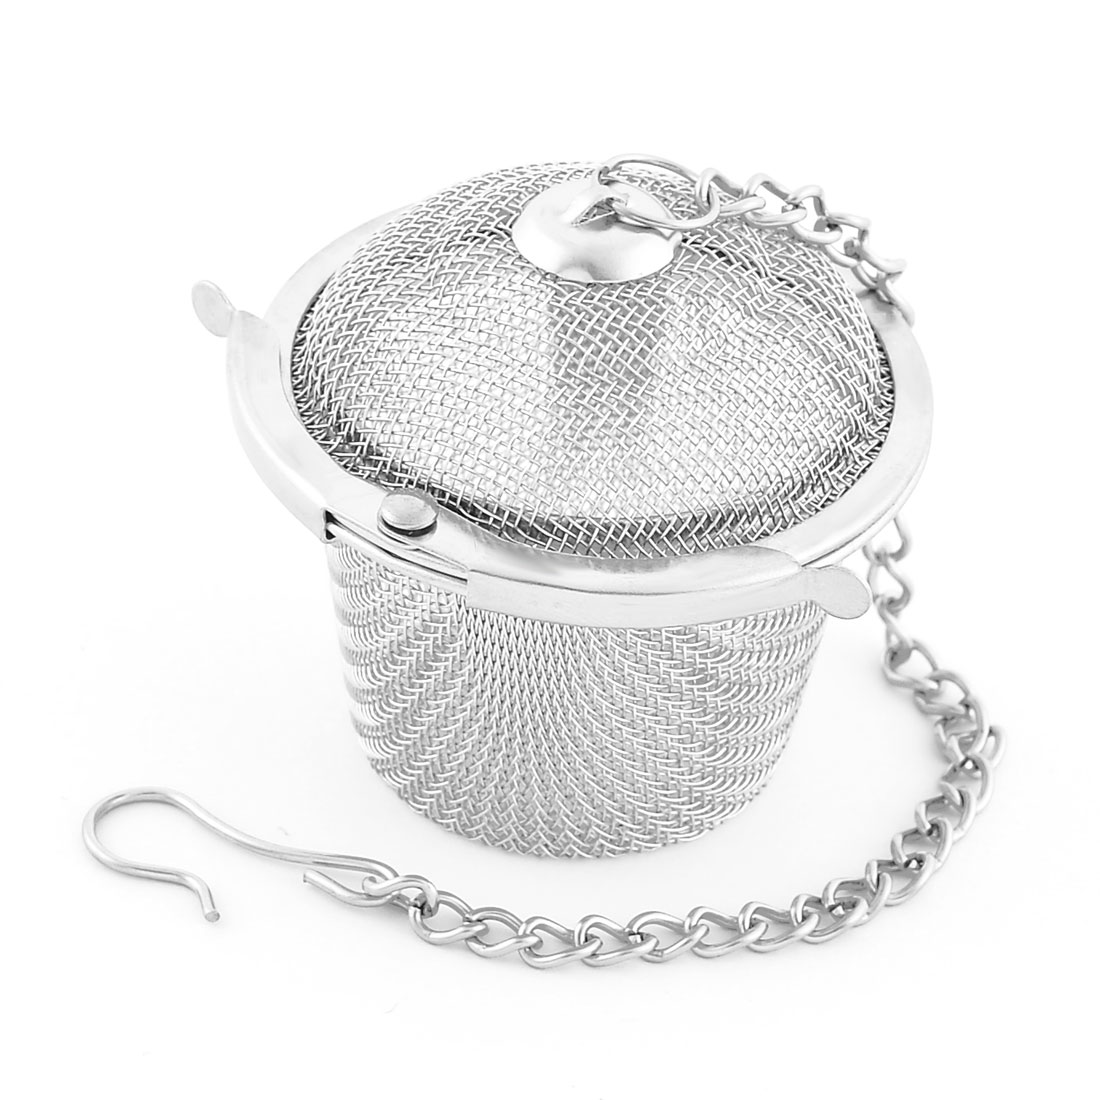 Round Shaped Mesh Locked Infuser Filter Tea Stainer Silver Tone 40mm Diameter